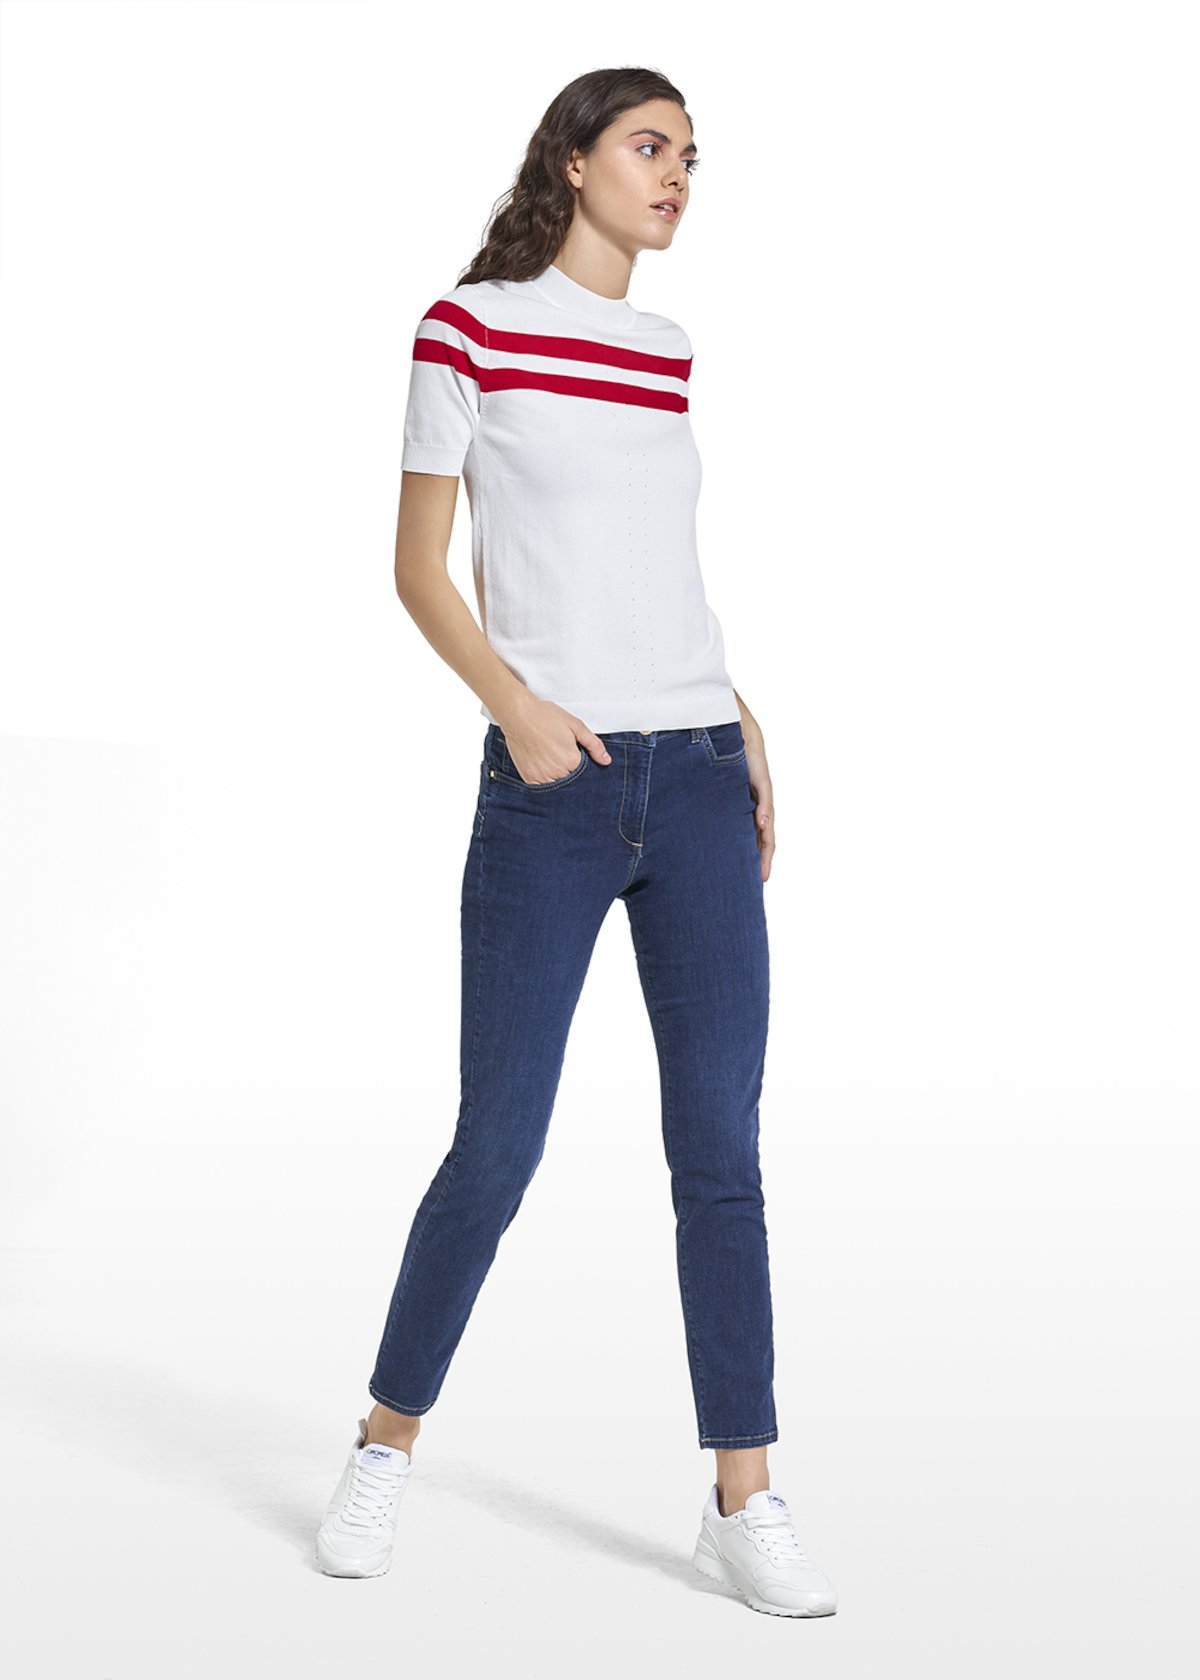 Molly jersey with double row on the front - White\ Tulipano - Woman